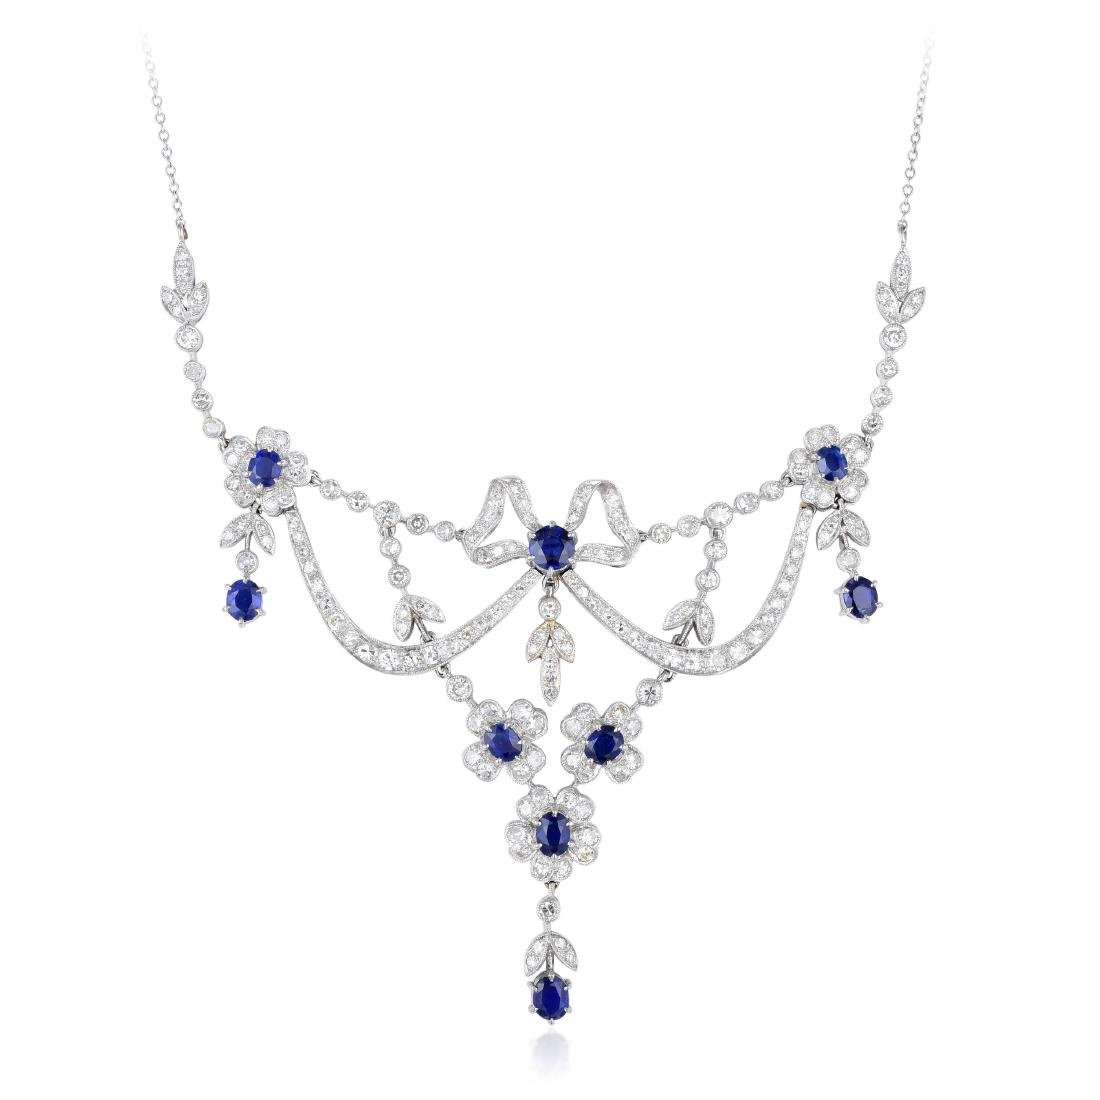 A Platinum Diamond and Sapphire Garland Necklace